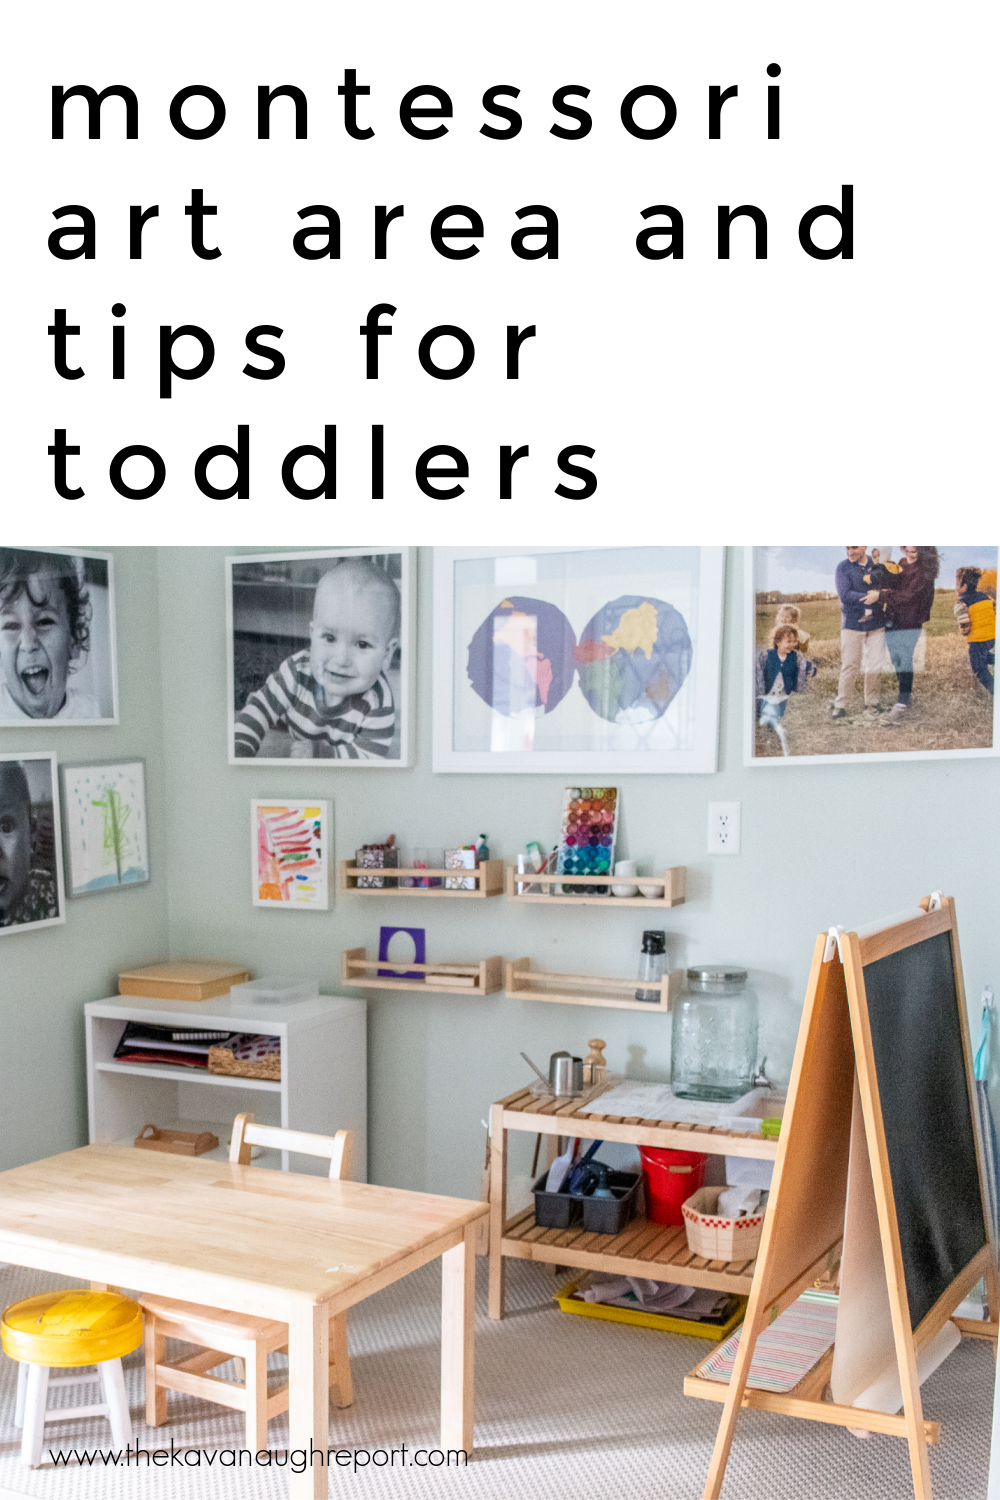 A look at our art area in our Montessori home and some tips on how to balance the space for toddlers and older children including preschoolers.